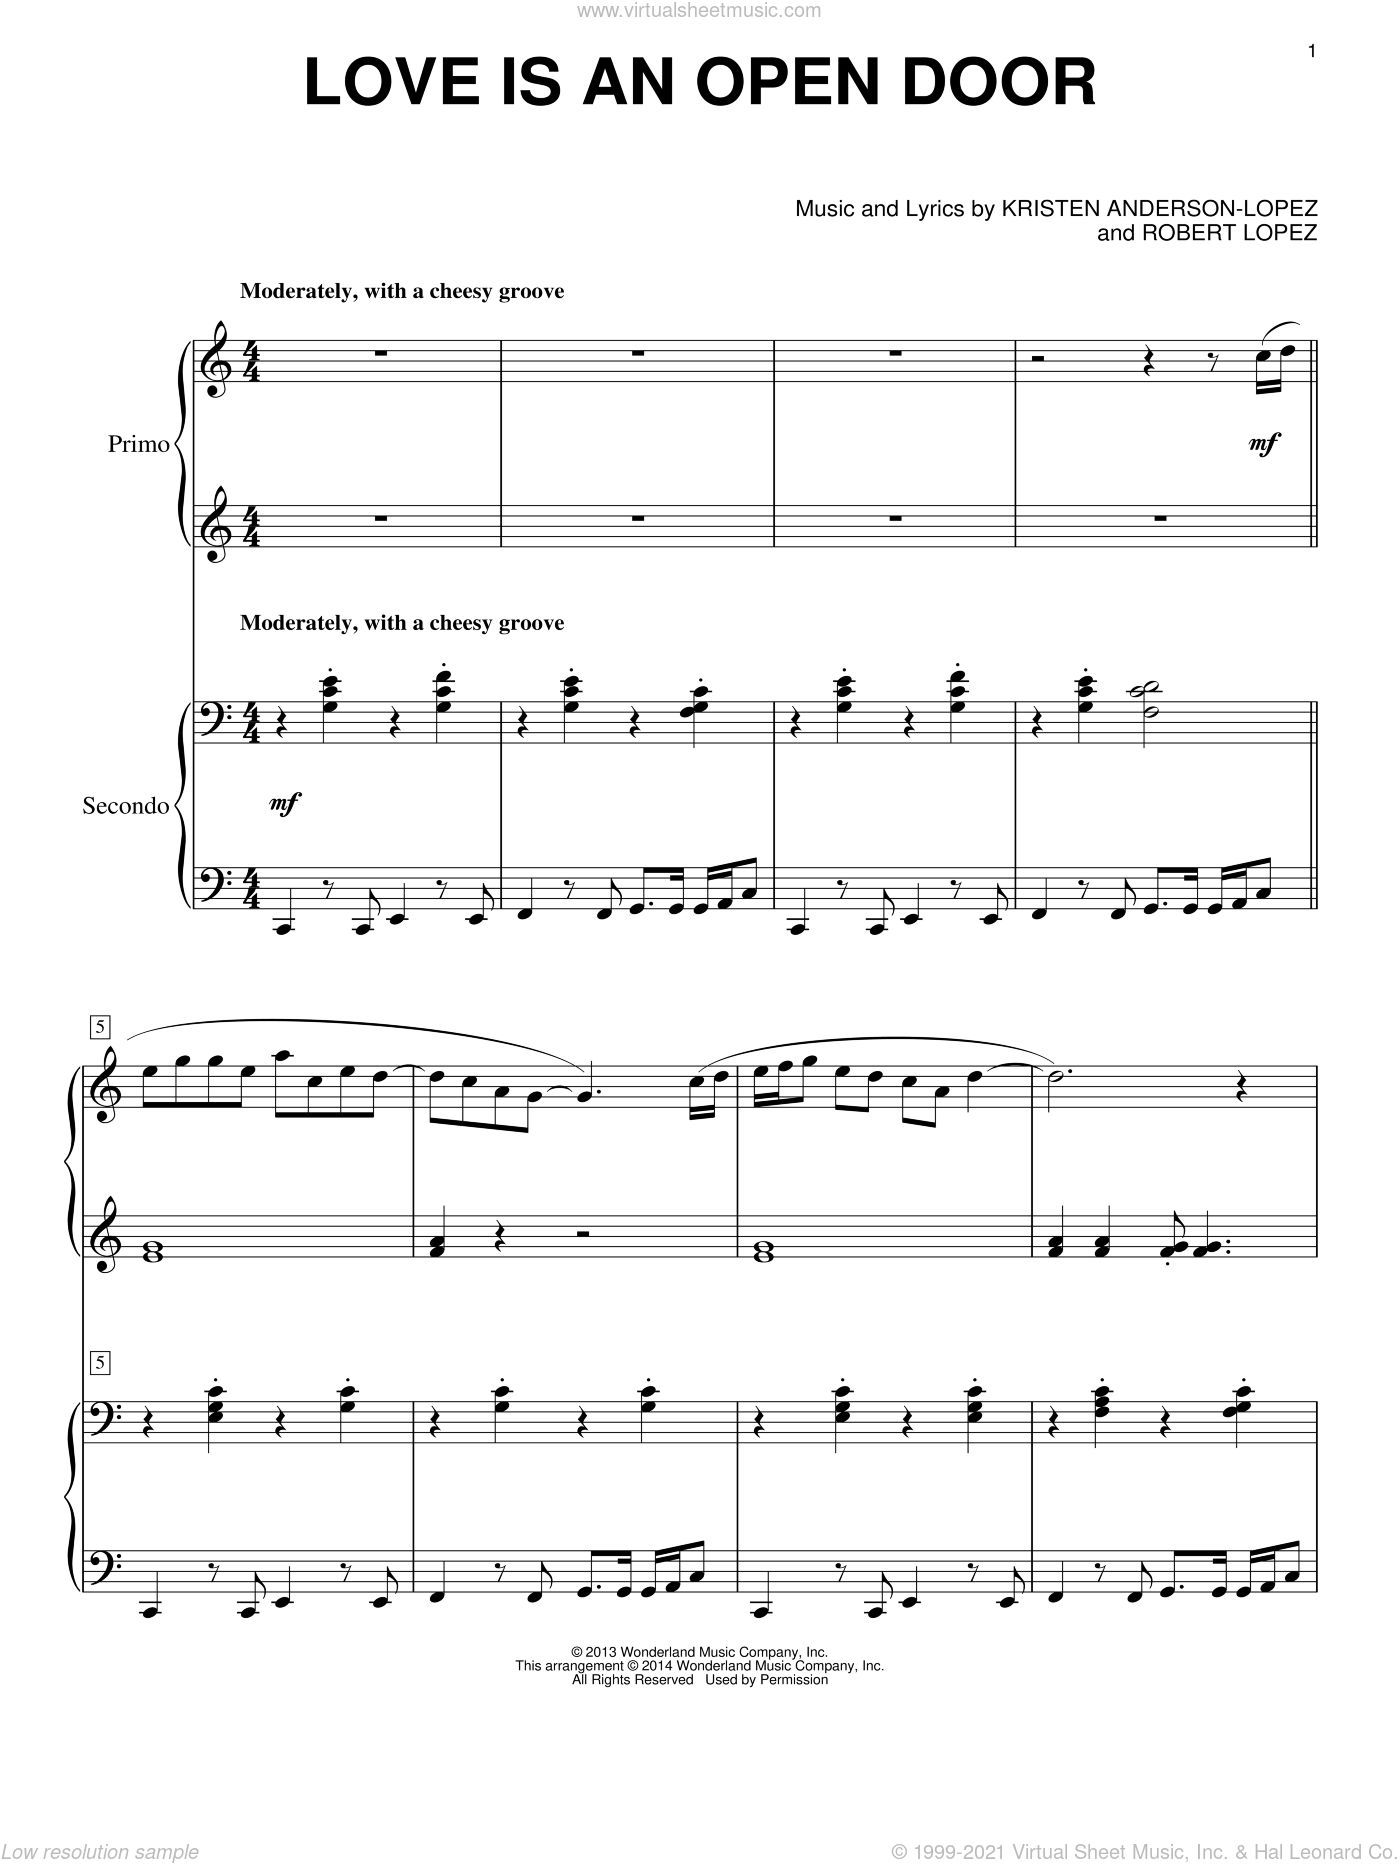 Love Is An Open Door sheet music for piano four hands by Robert Lopez, Kristen Bell & Santino Fontana and Kristen Anderson-Lopez, intermediate